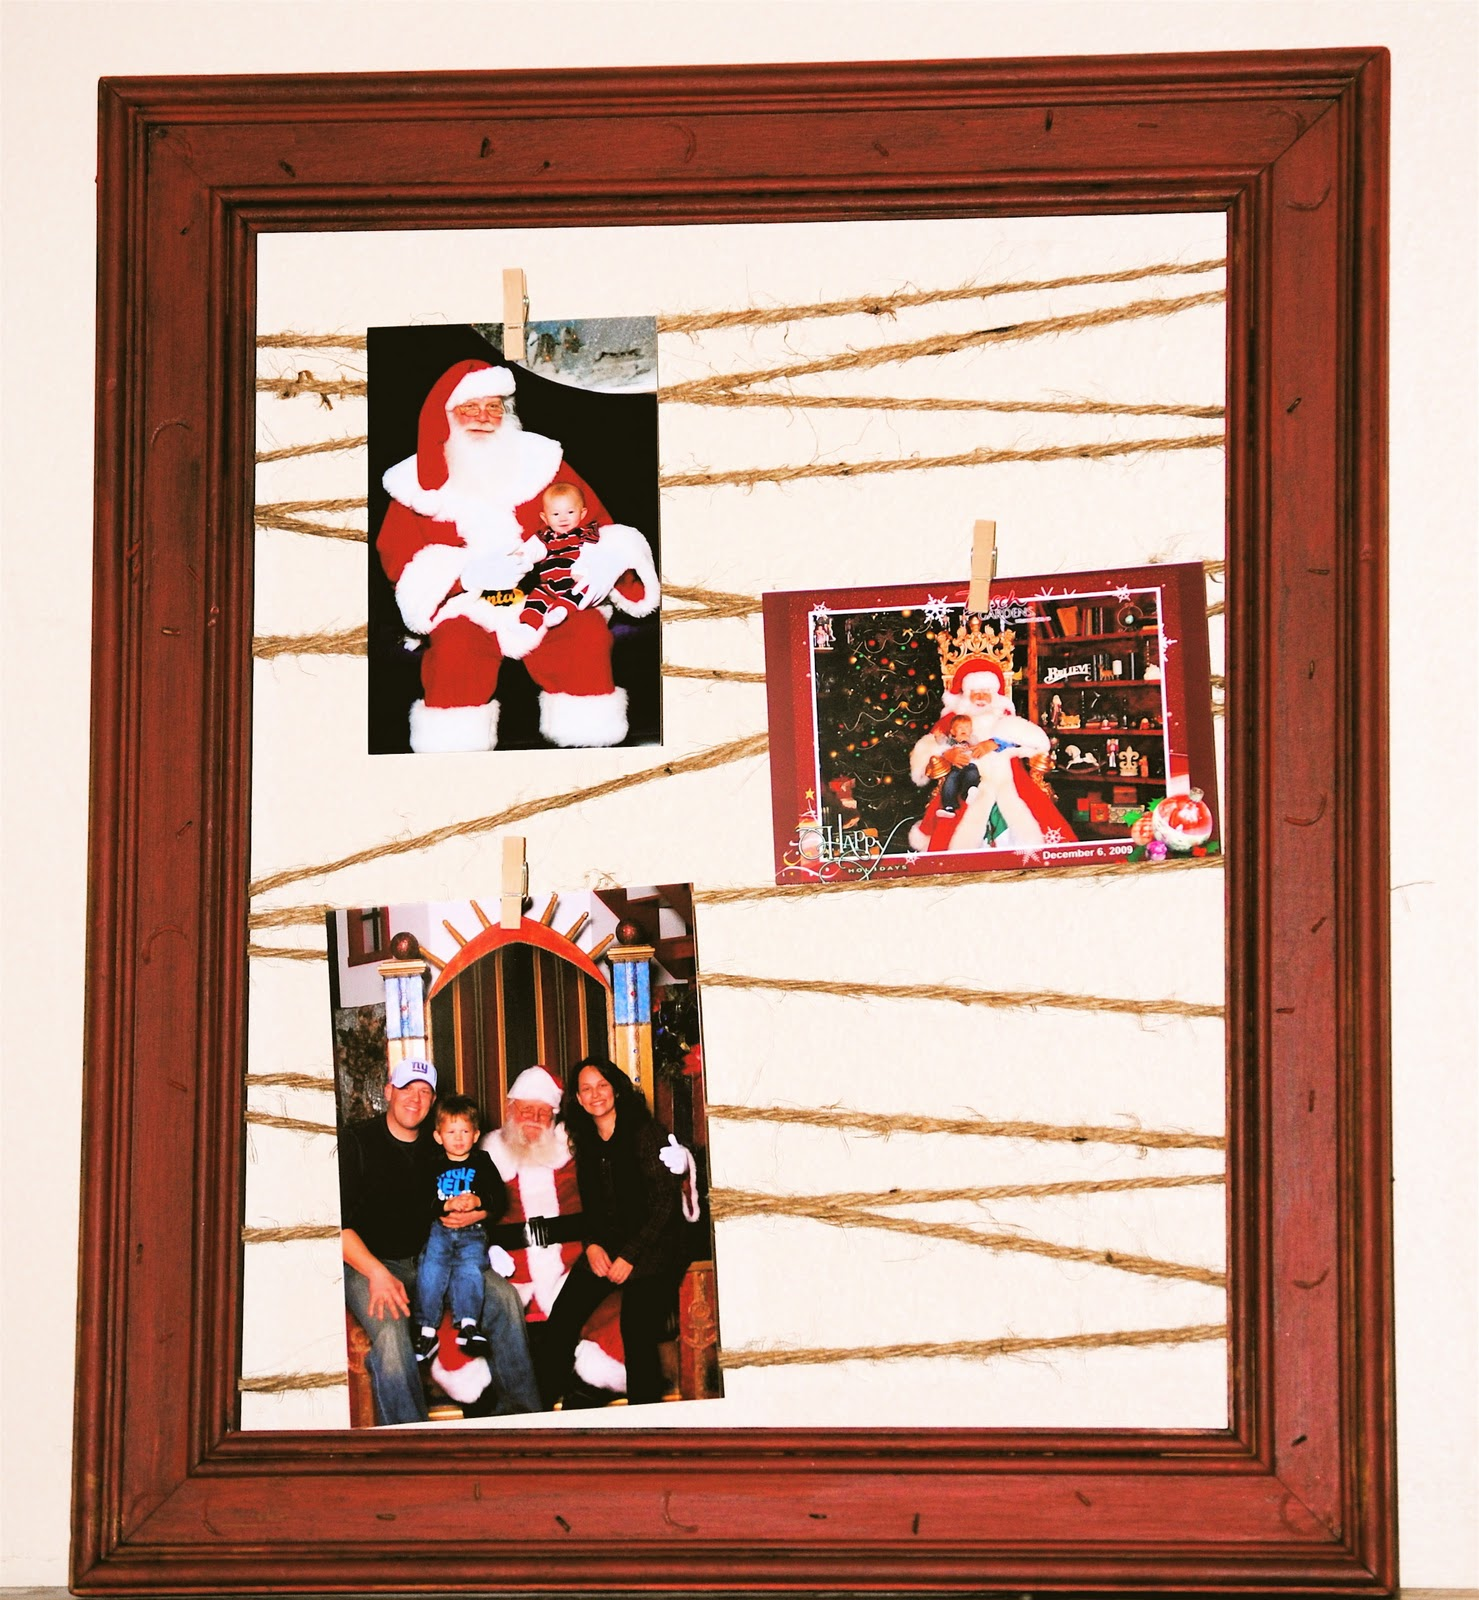 Photo Display for Santa Pictures using a Picture Frame and Jute